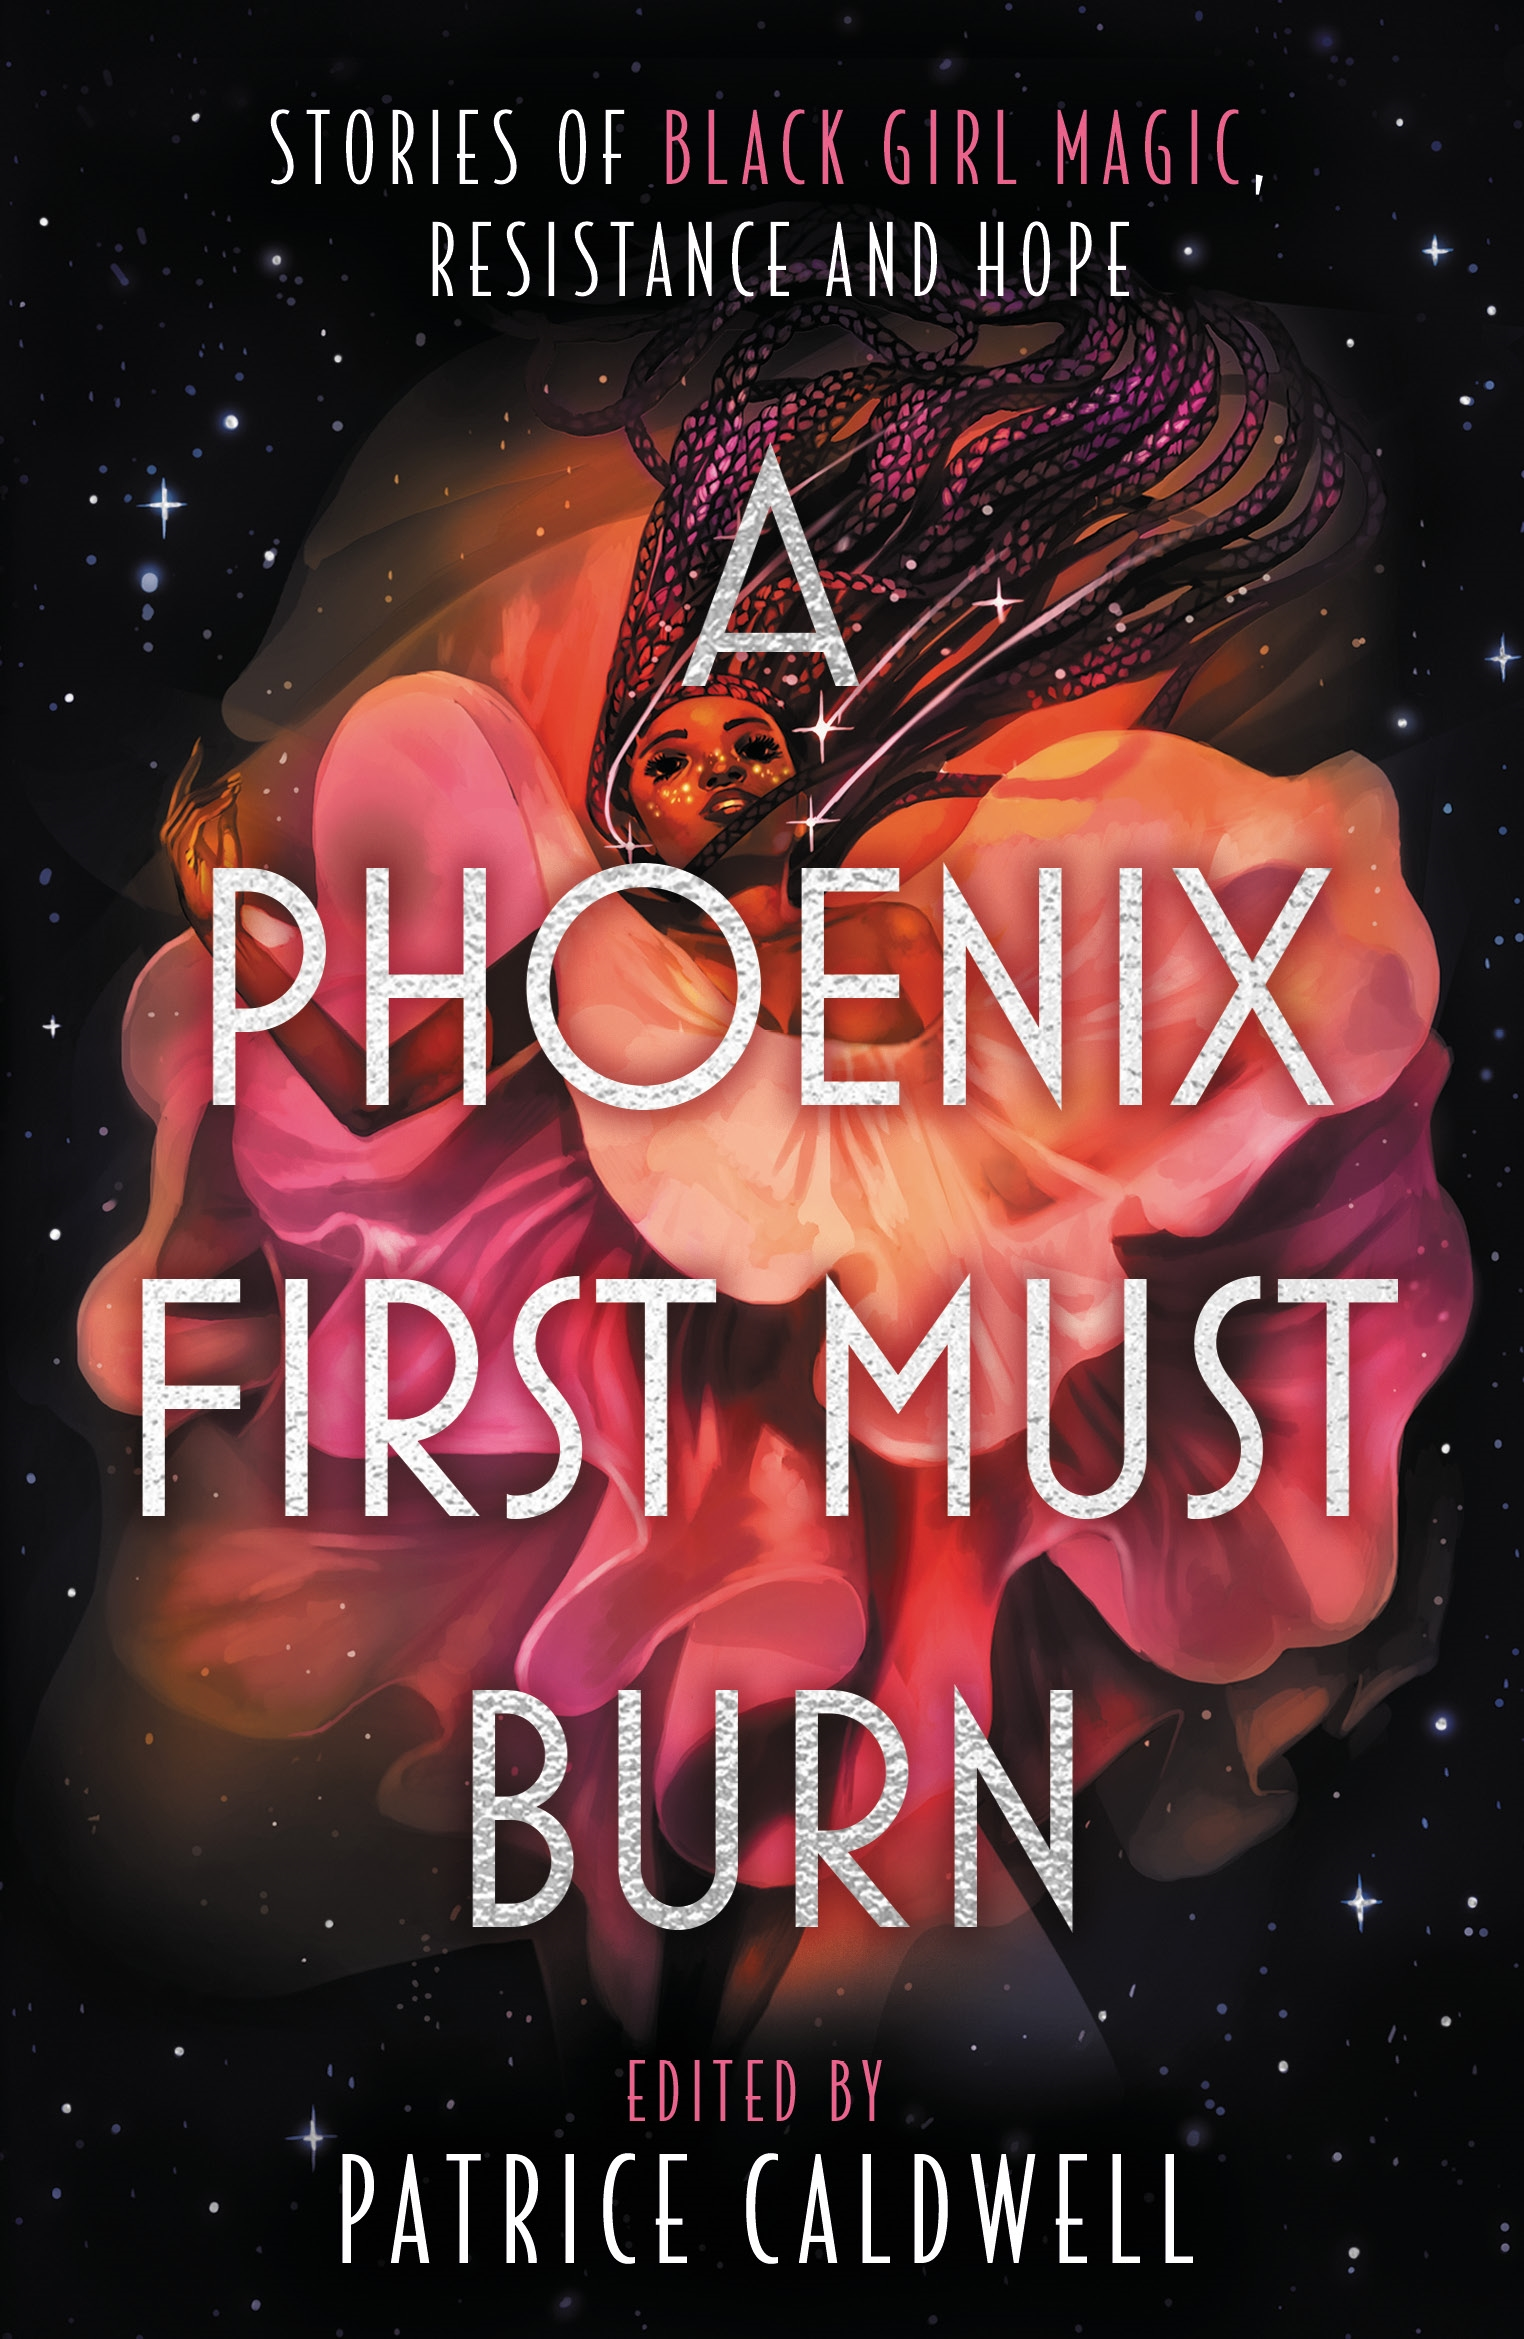 A Phoenix First Must Burn by Patrice Caldwell